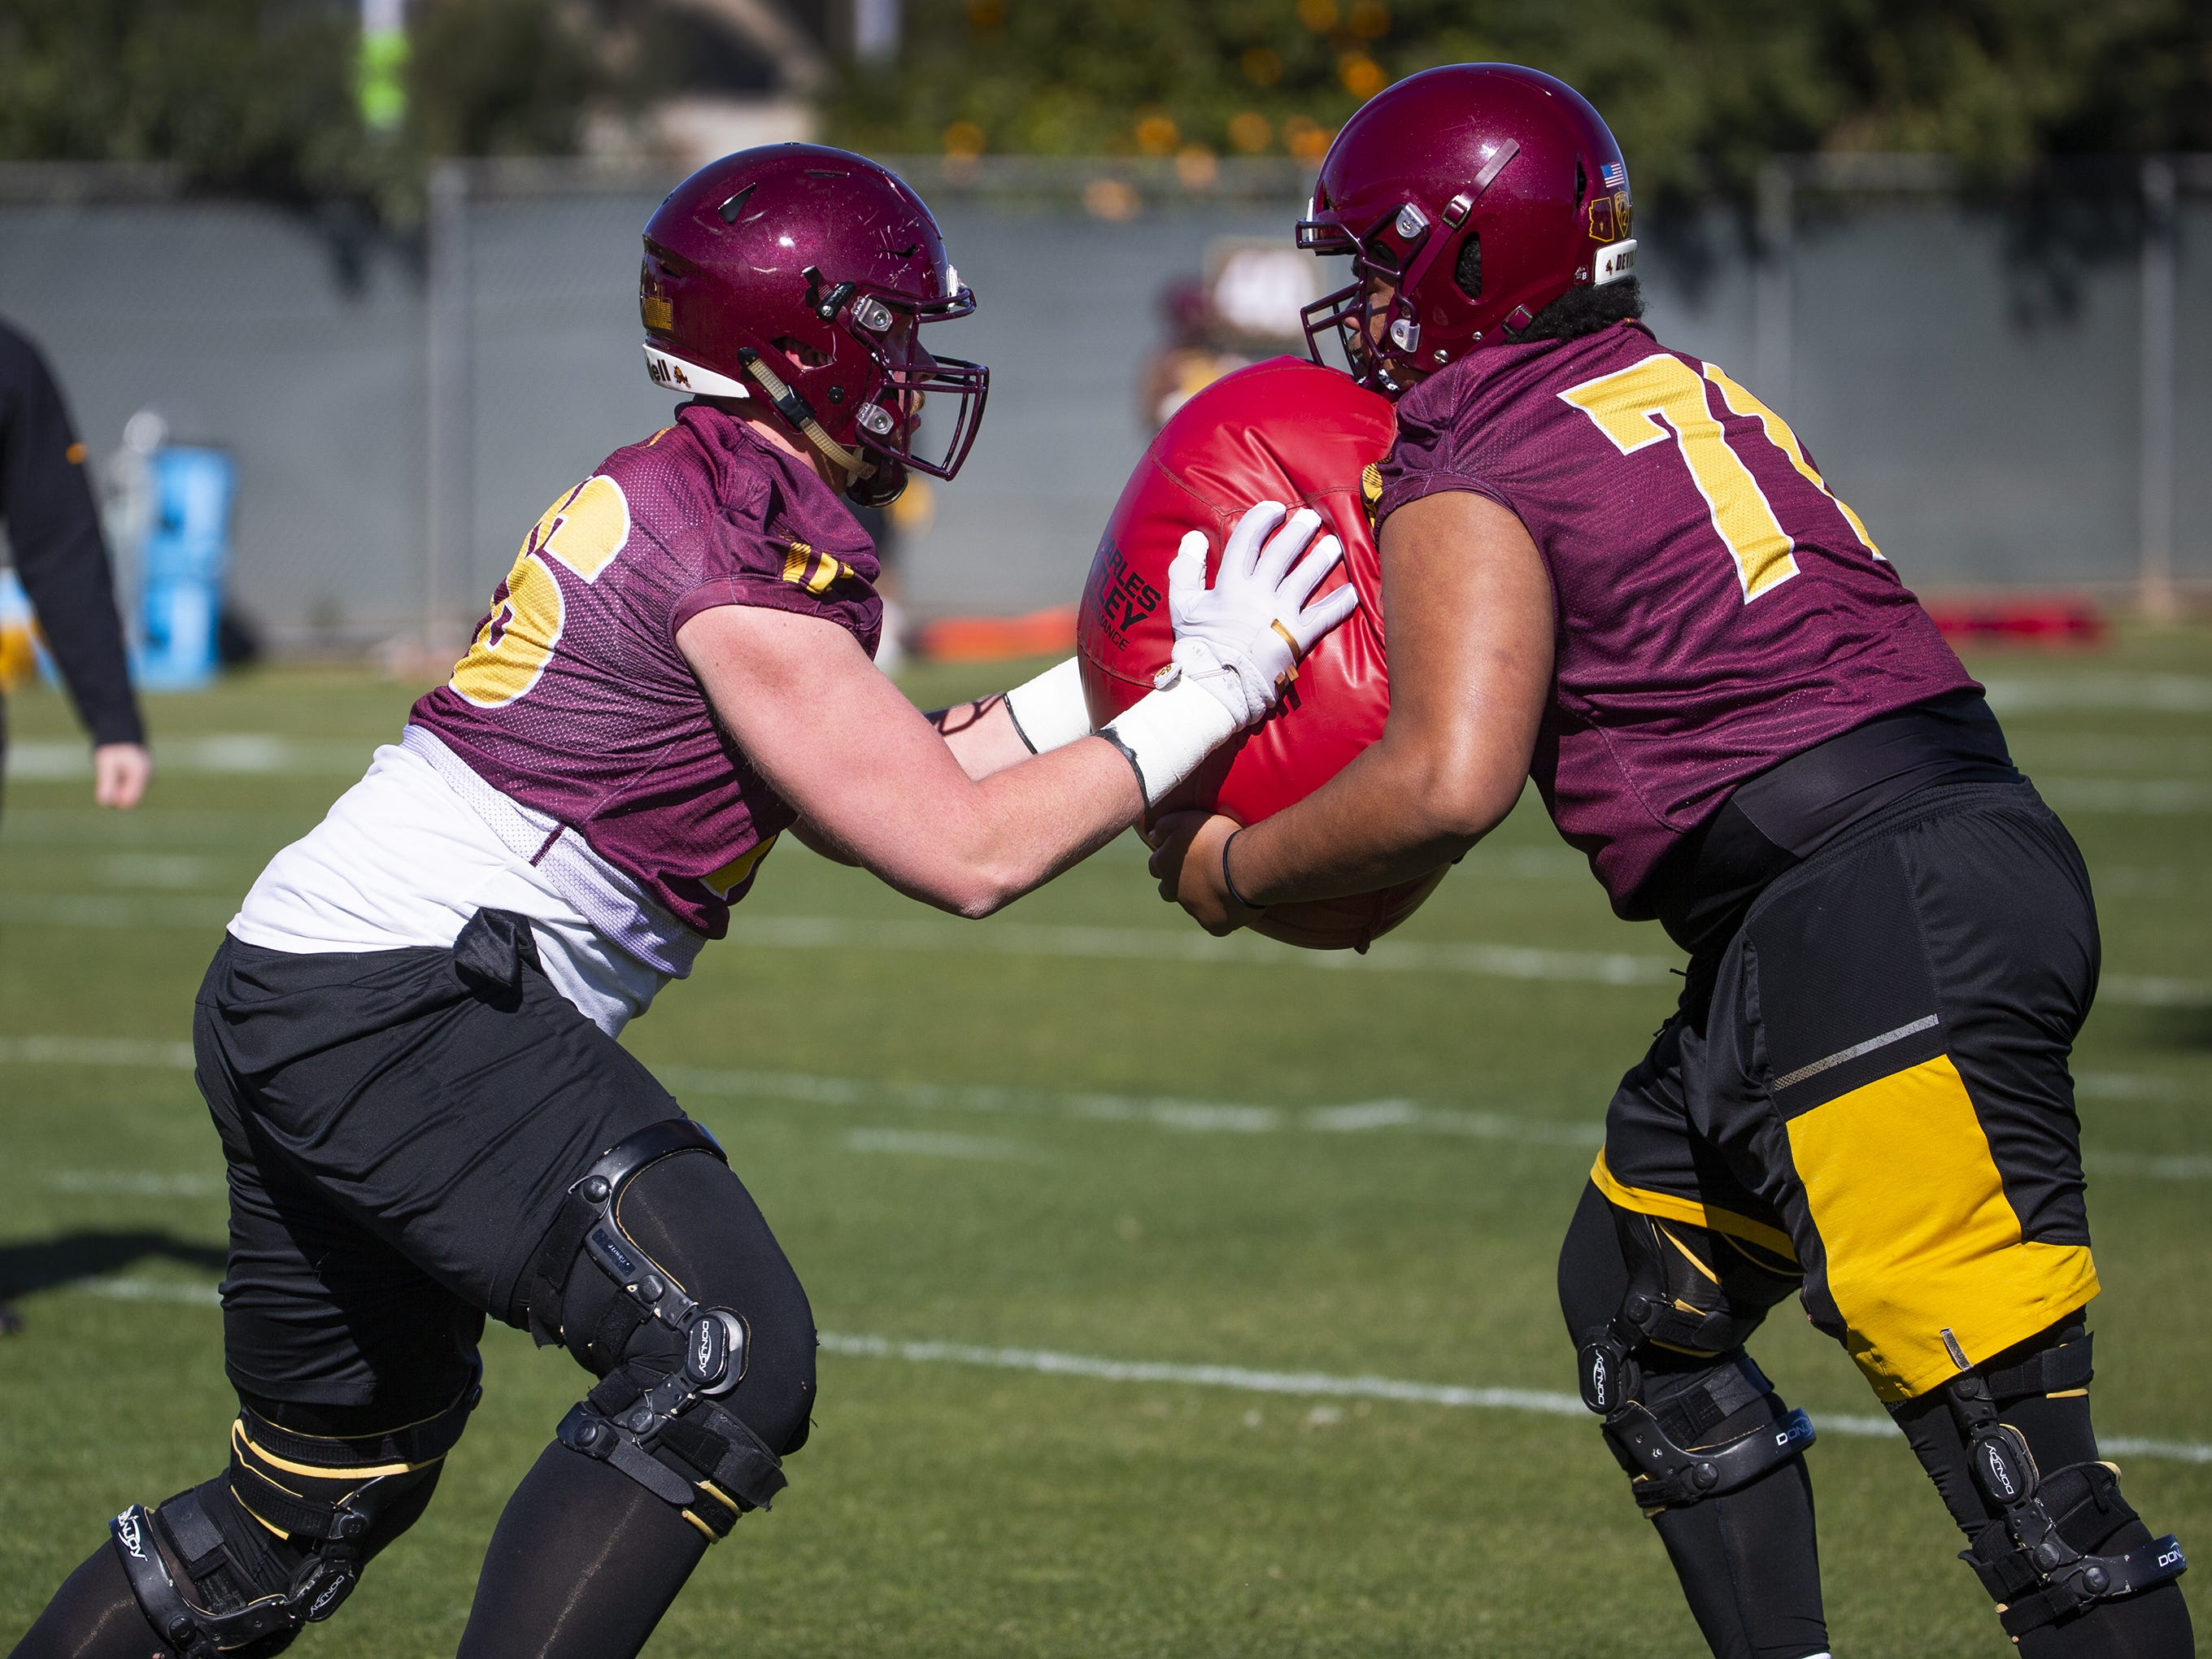 The Arizona State University football team practiced in Tempe, Tuesday, February 26, 2019.   Offensive linemen Spencer Lovell, left, and Steven Miller collide during practice.